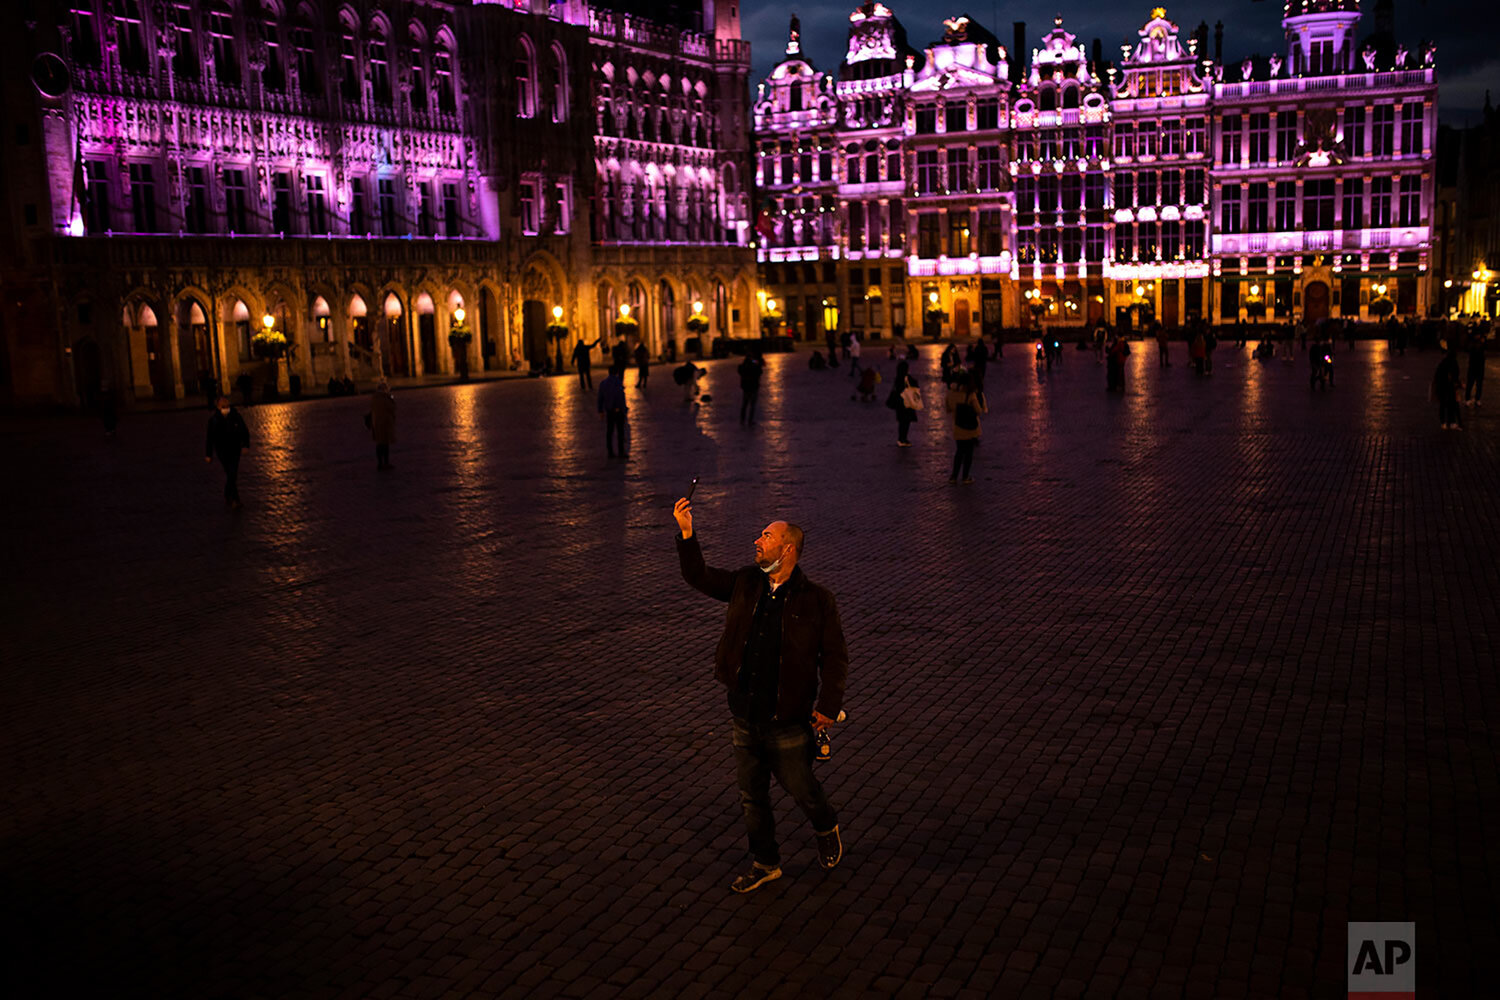 Virus makes Friday nights empty, quiet in Europe